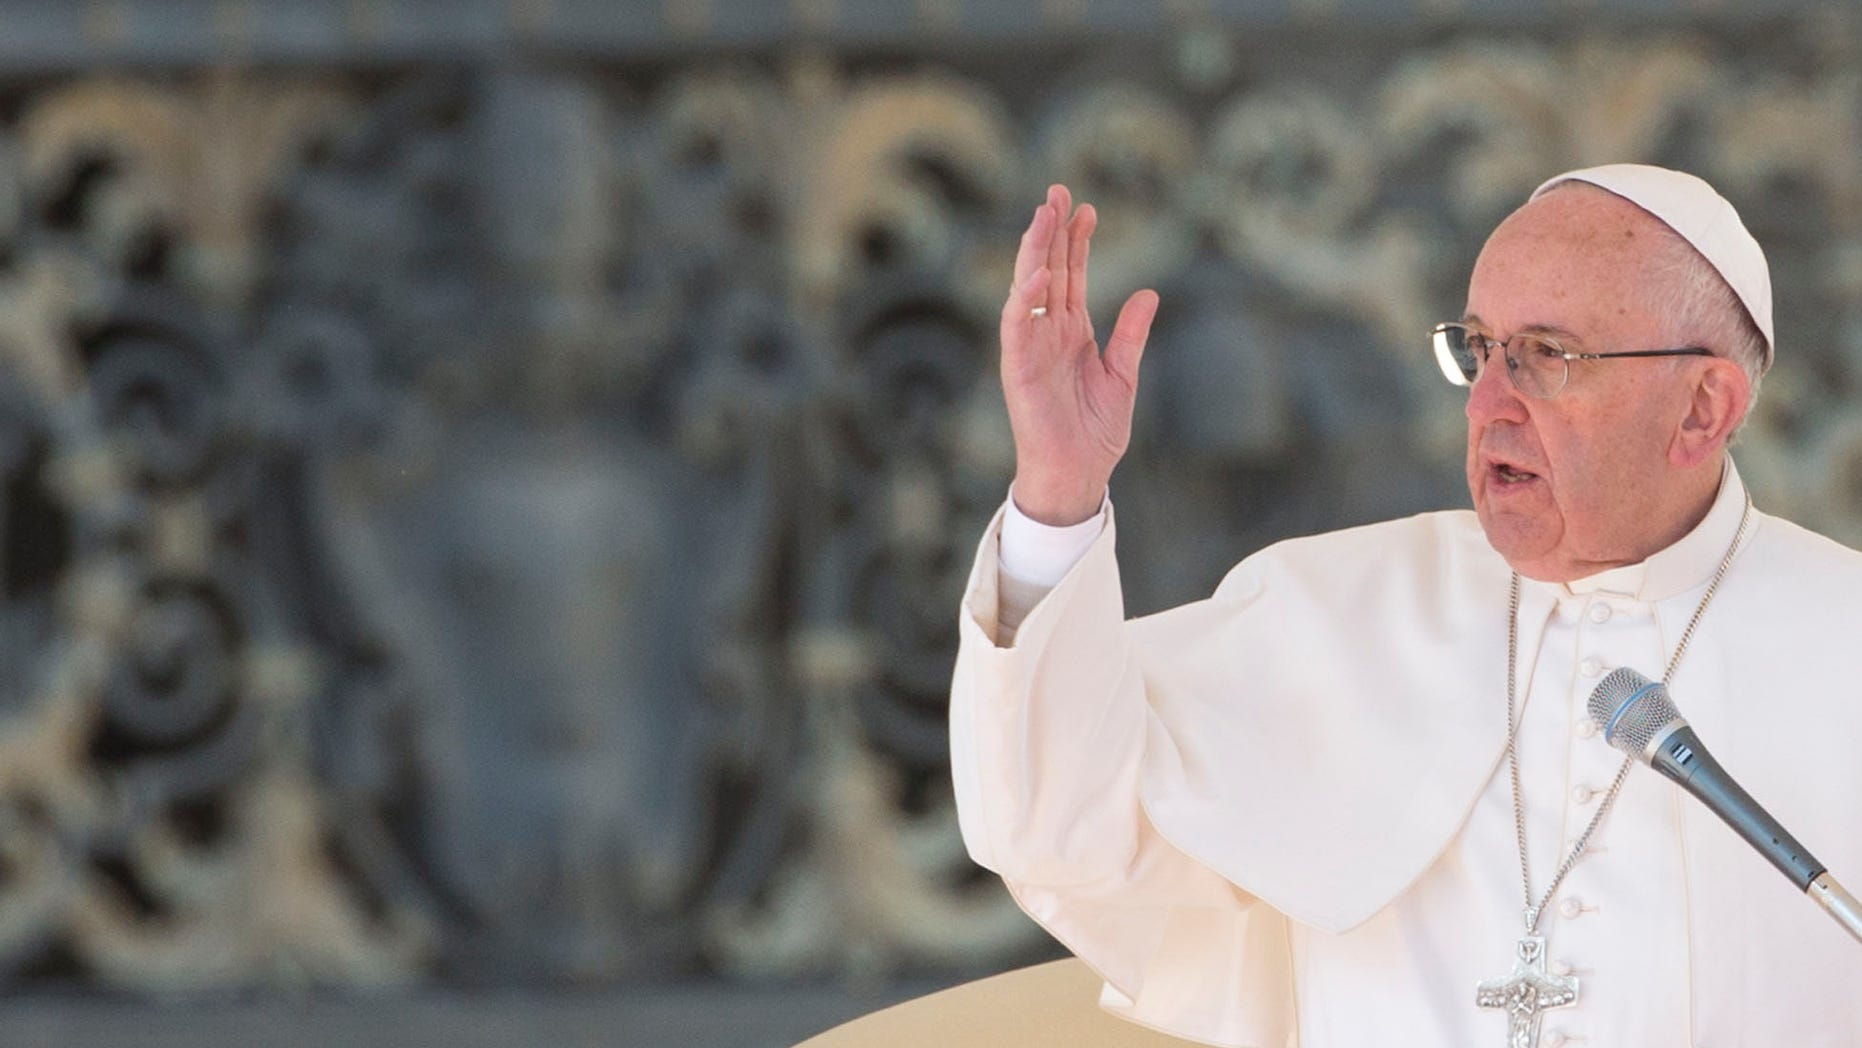 Pope Francis delivers his blessing at the end of  a special jubilee audience in St. Peter's Square at the Vatican, Saturday, Feb. 20, 2016. (AP Photo/Alessandra Tarantino)